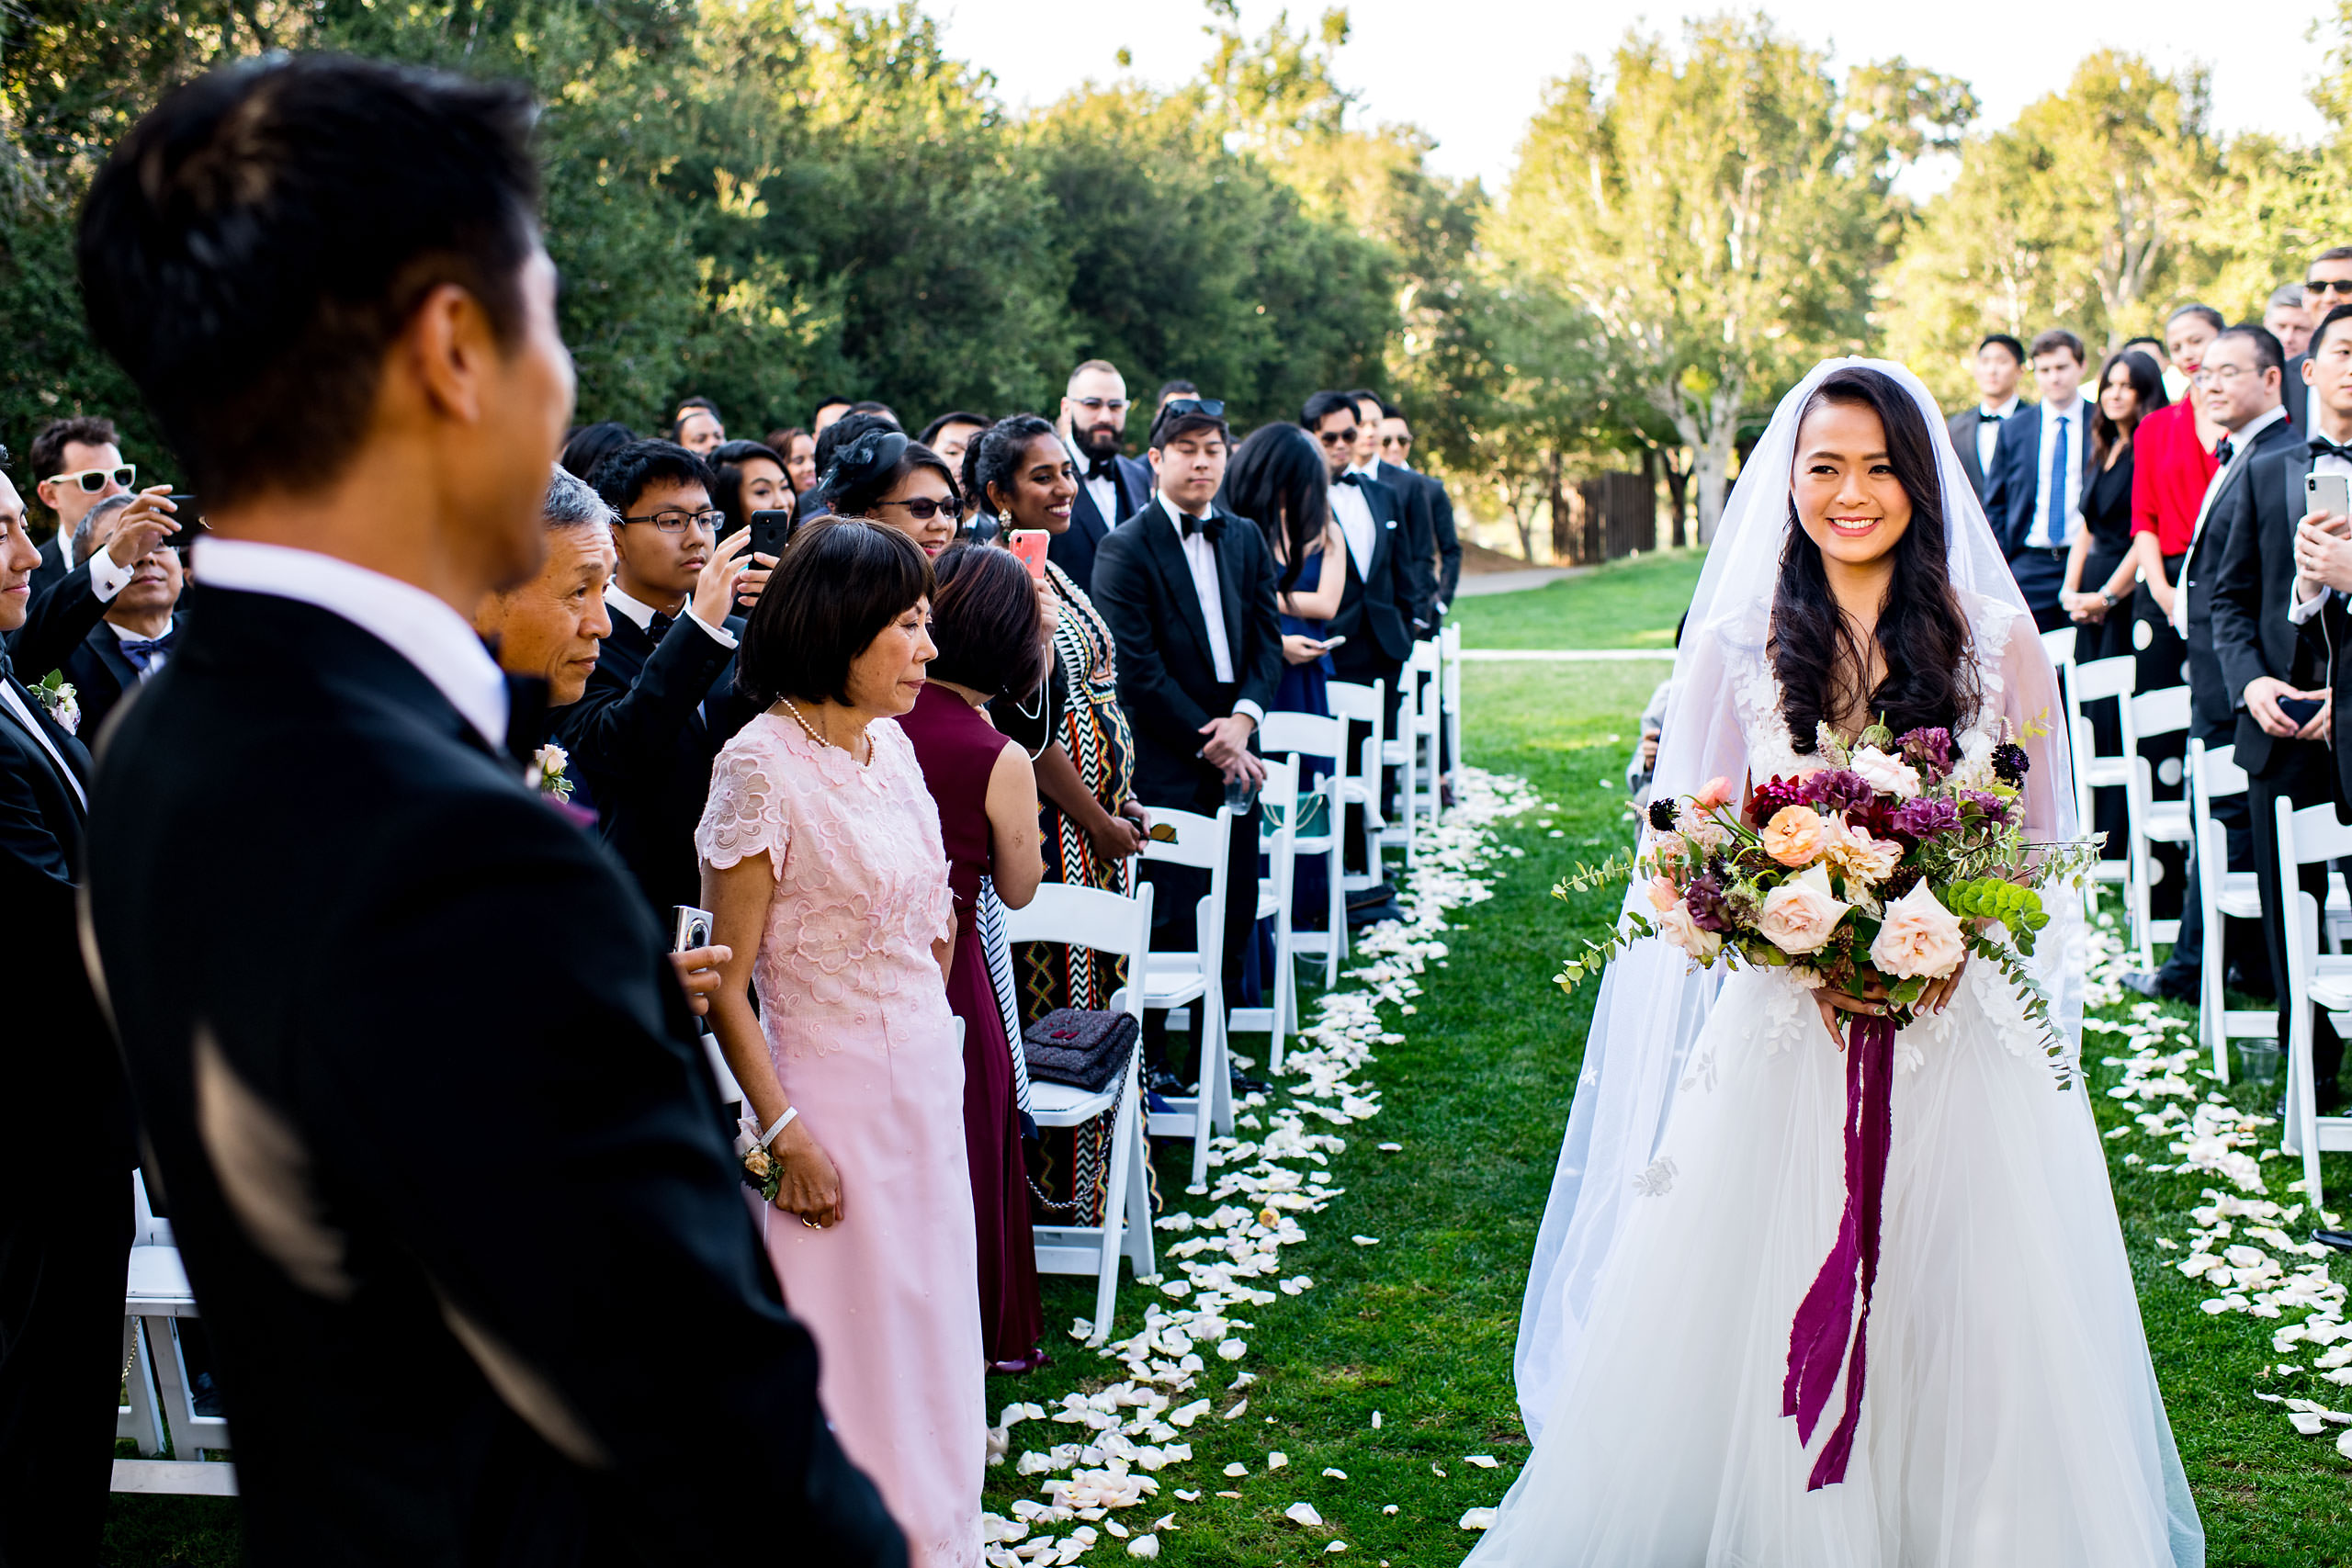 Ceremony by Carmel Valley Ranch Wedding Photographer Sean LeBlanc